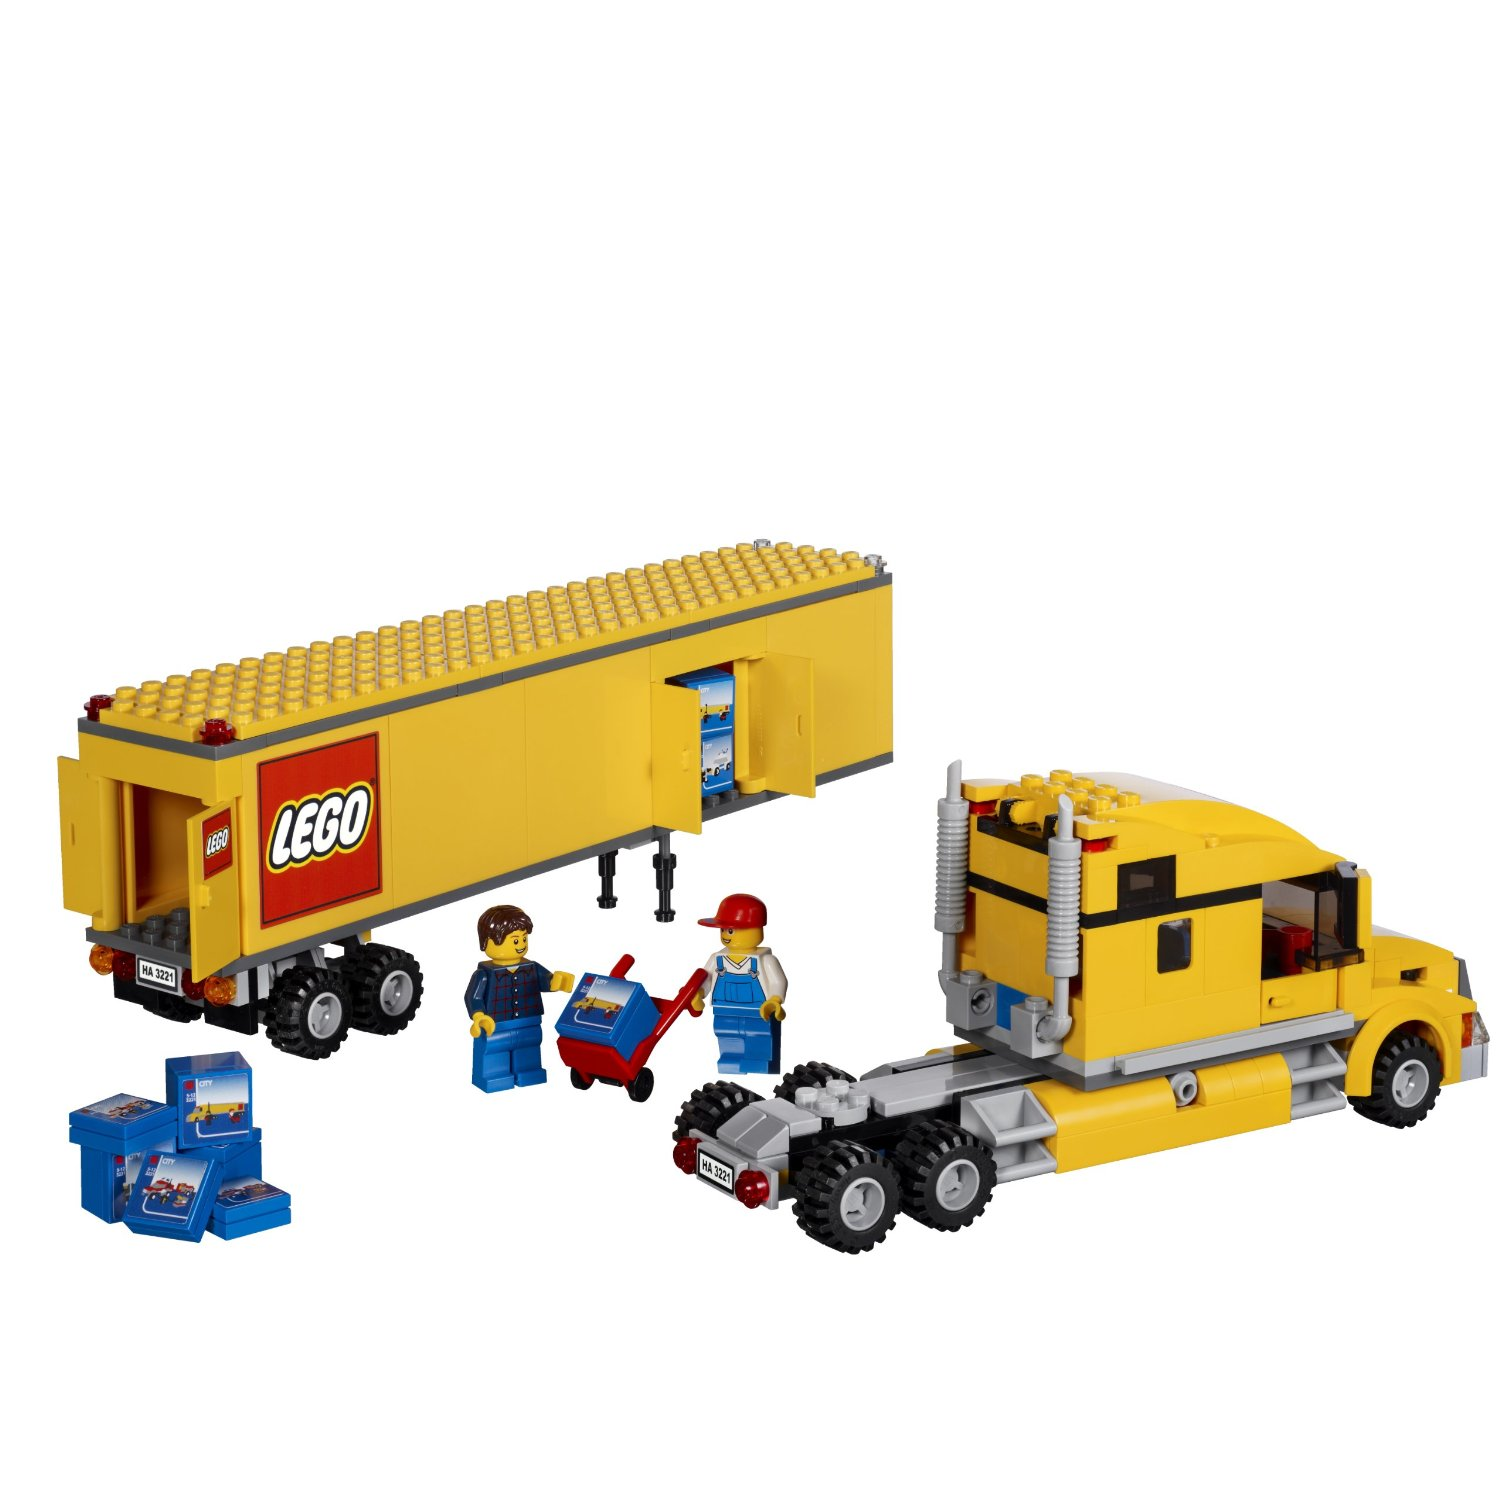 LEGO City Truck 3221 Building Toy 531244485 on city dump trailers